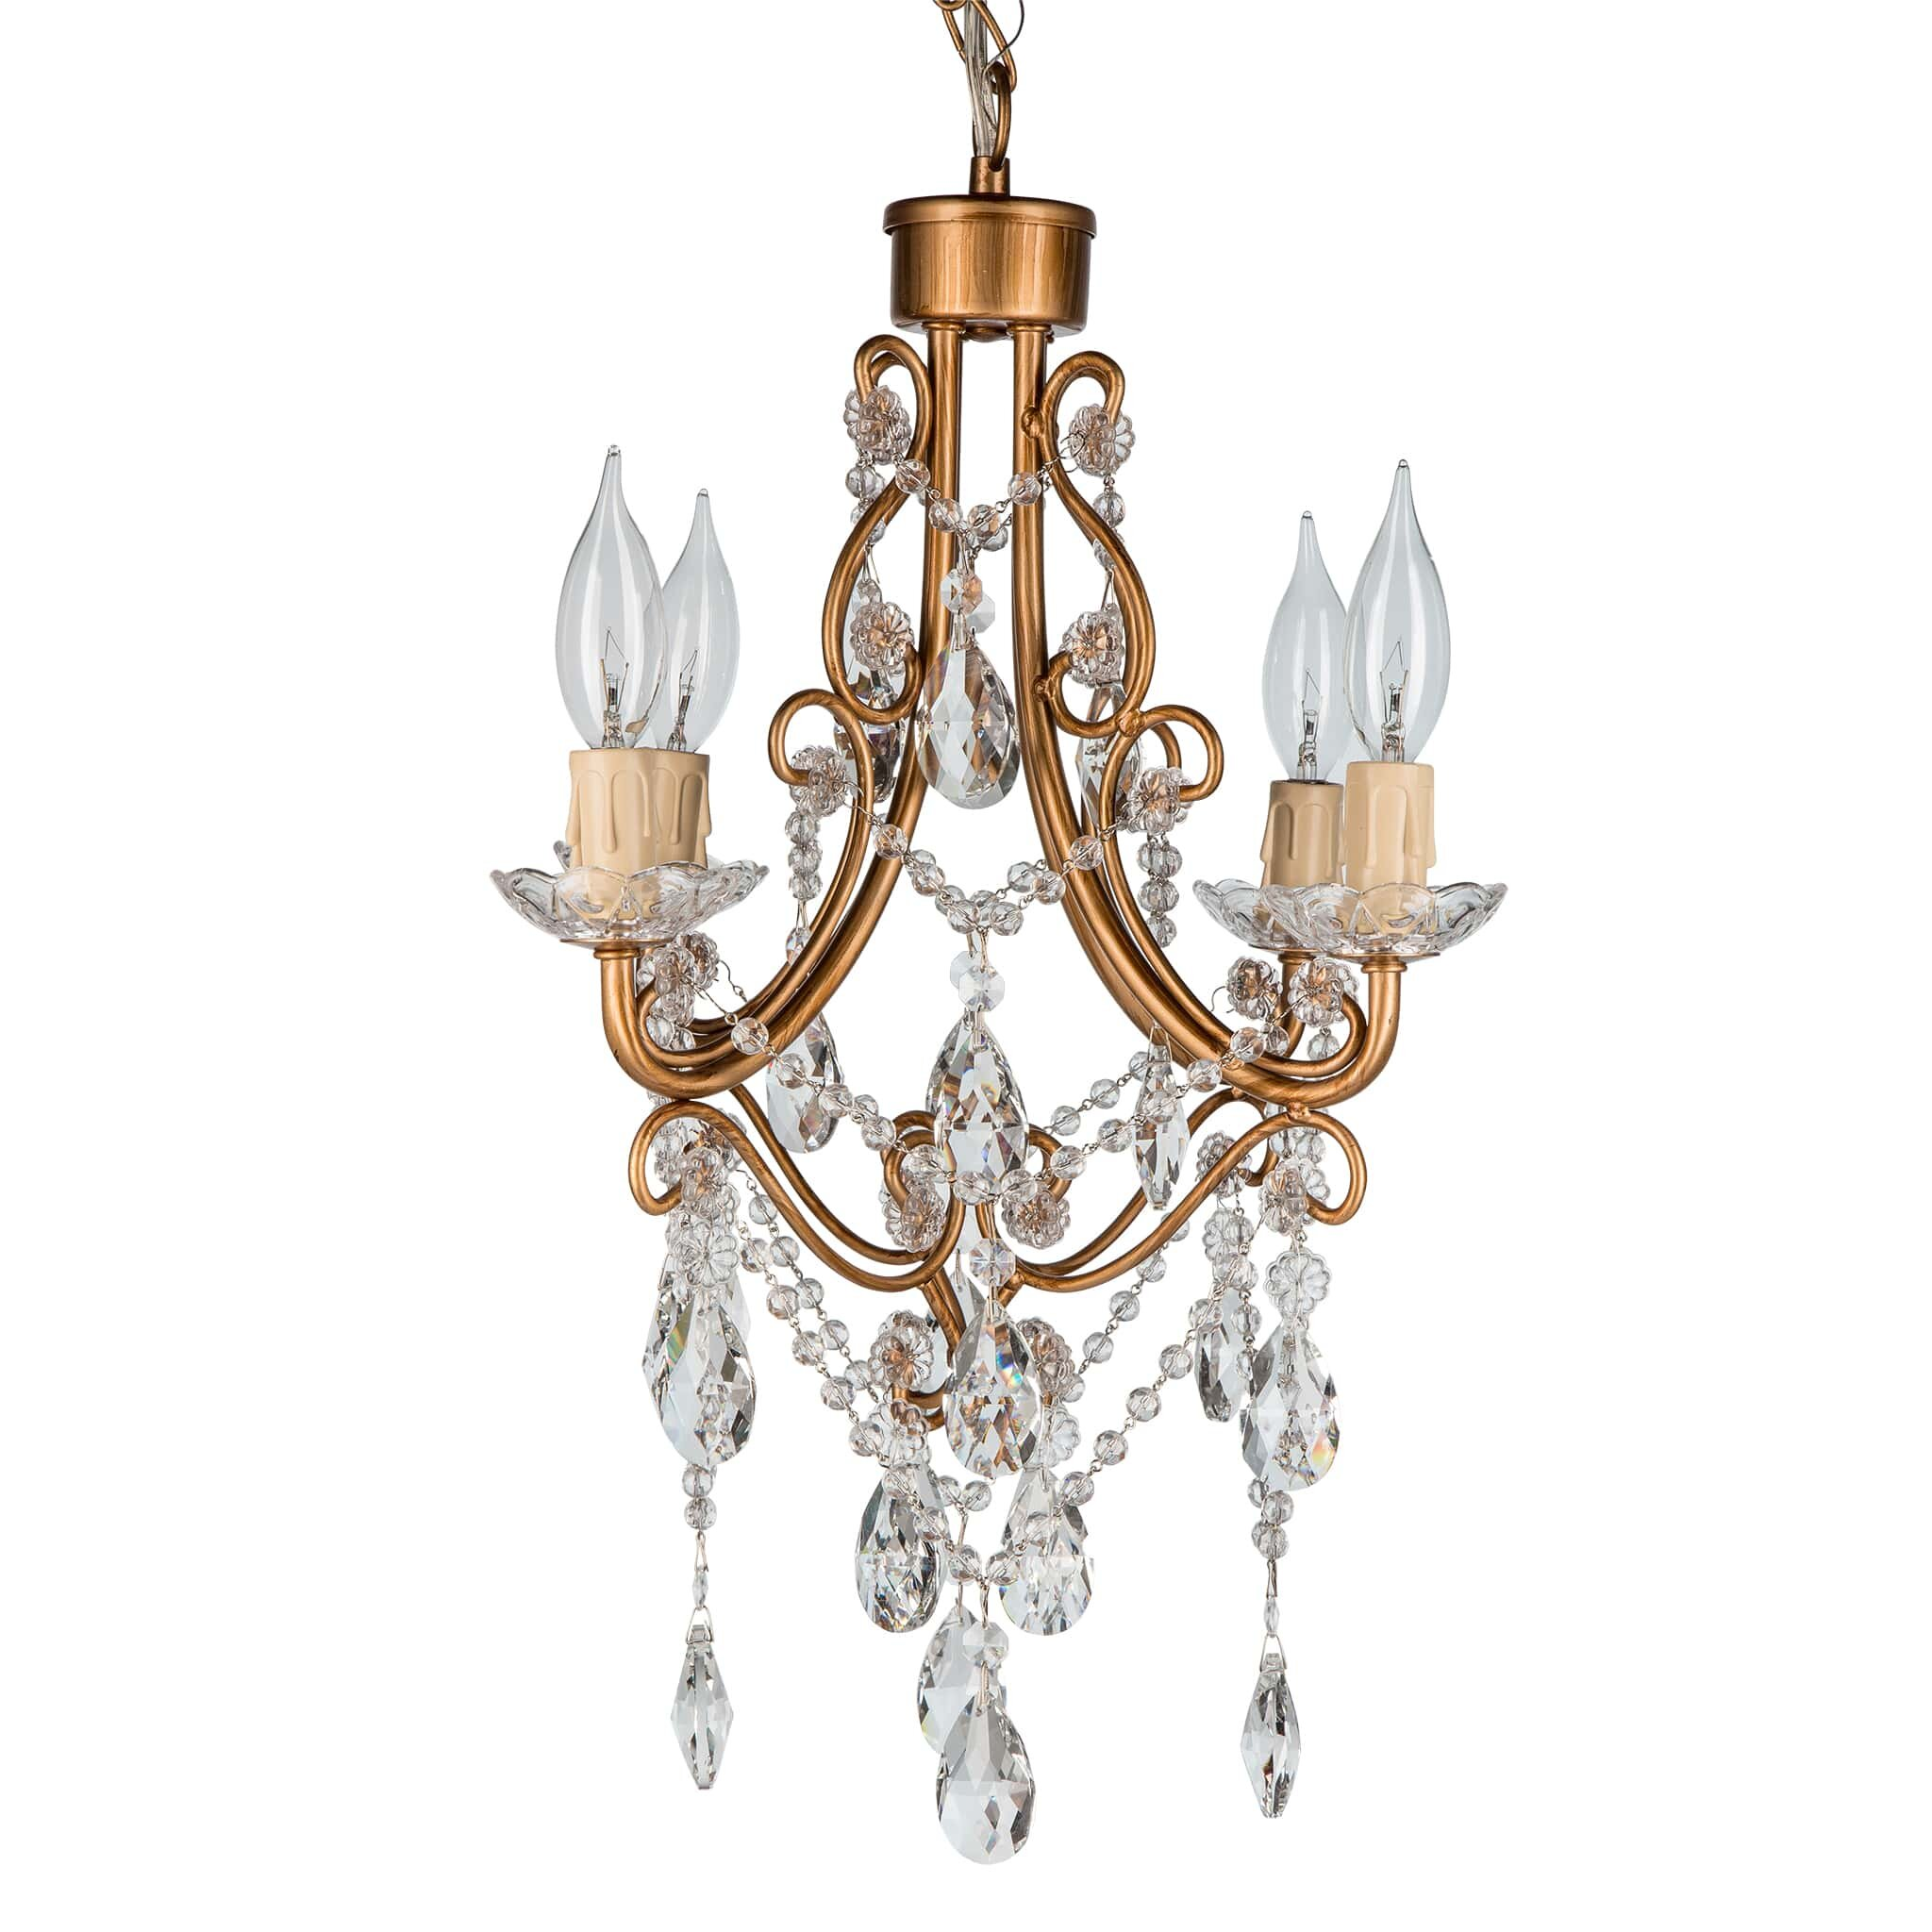 Wayfair Chandelier: AmalfiDecor Madeline 4 Light Crystal Chandelier Chandelier